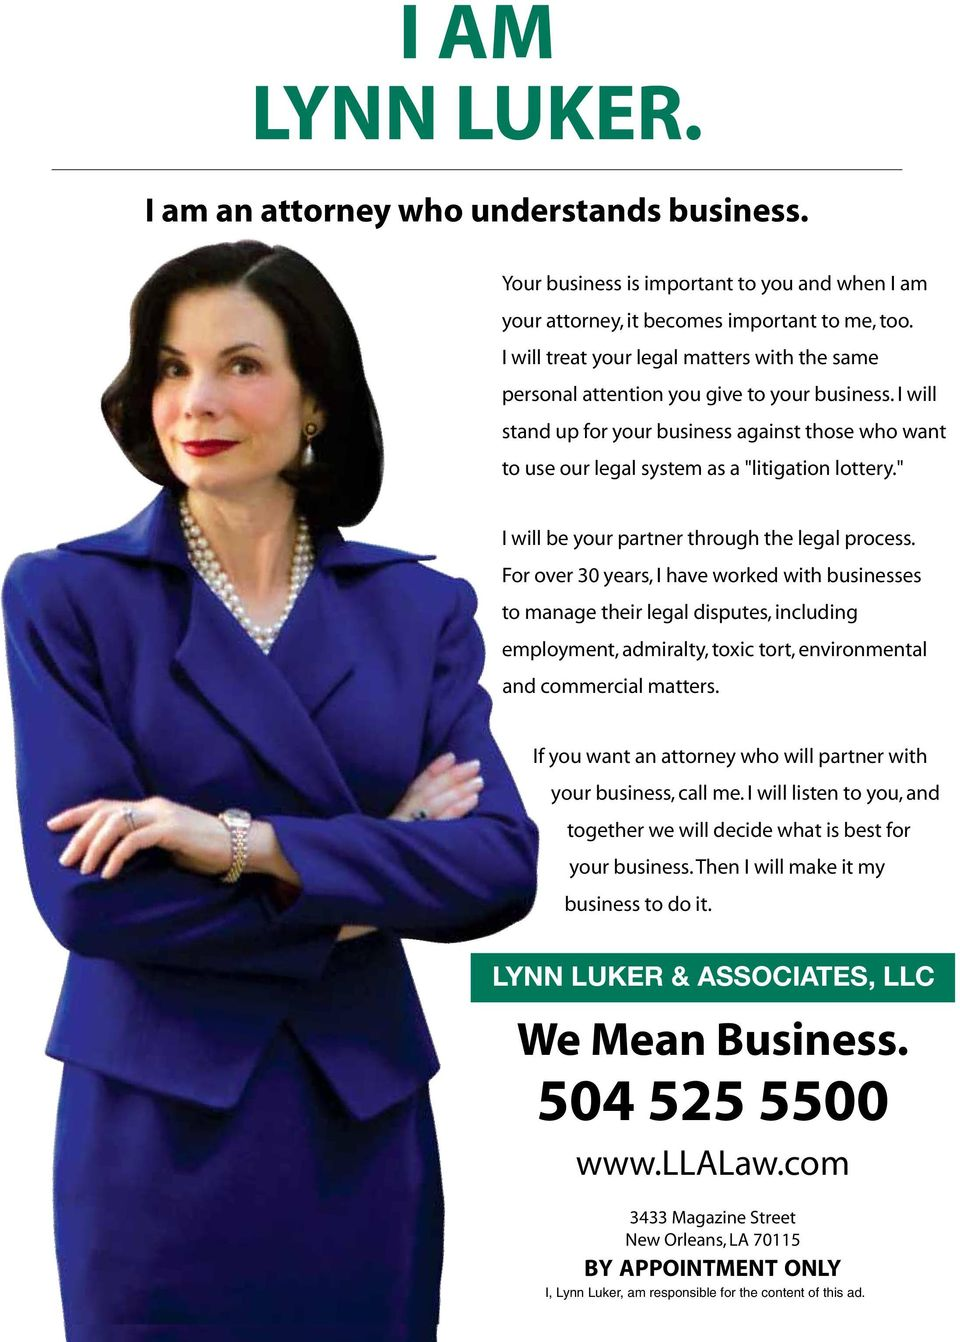 your attorney, it becomes important to me, too. I will treat your legal matters with the same I will treat your legal matters with the same personal attention you give to your business.